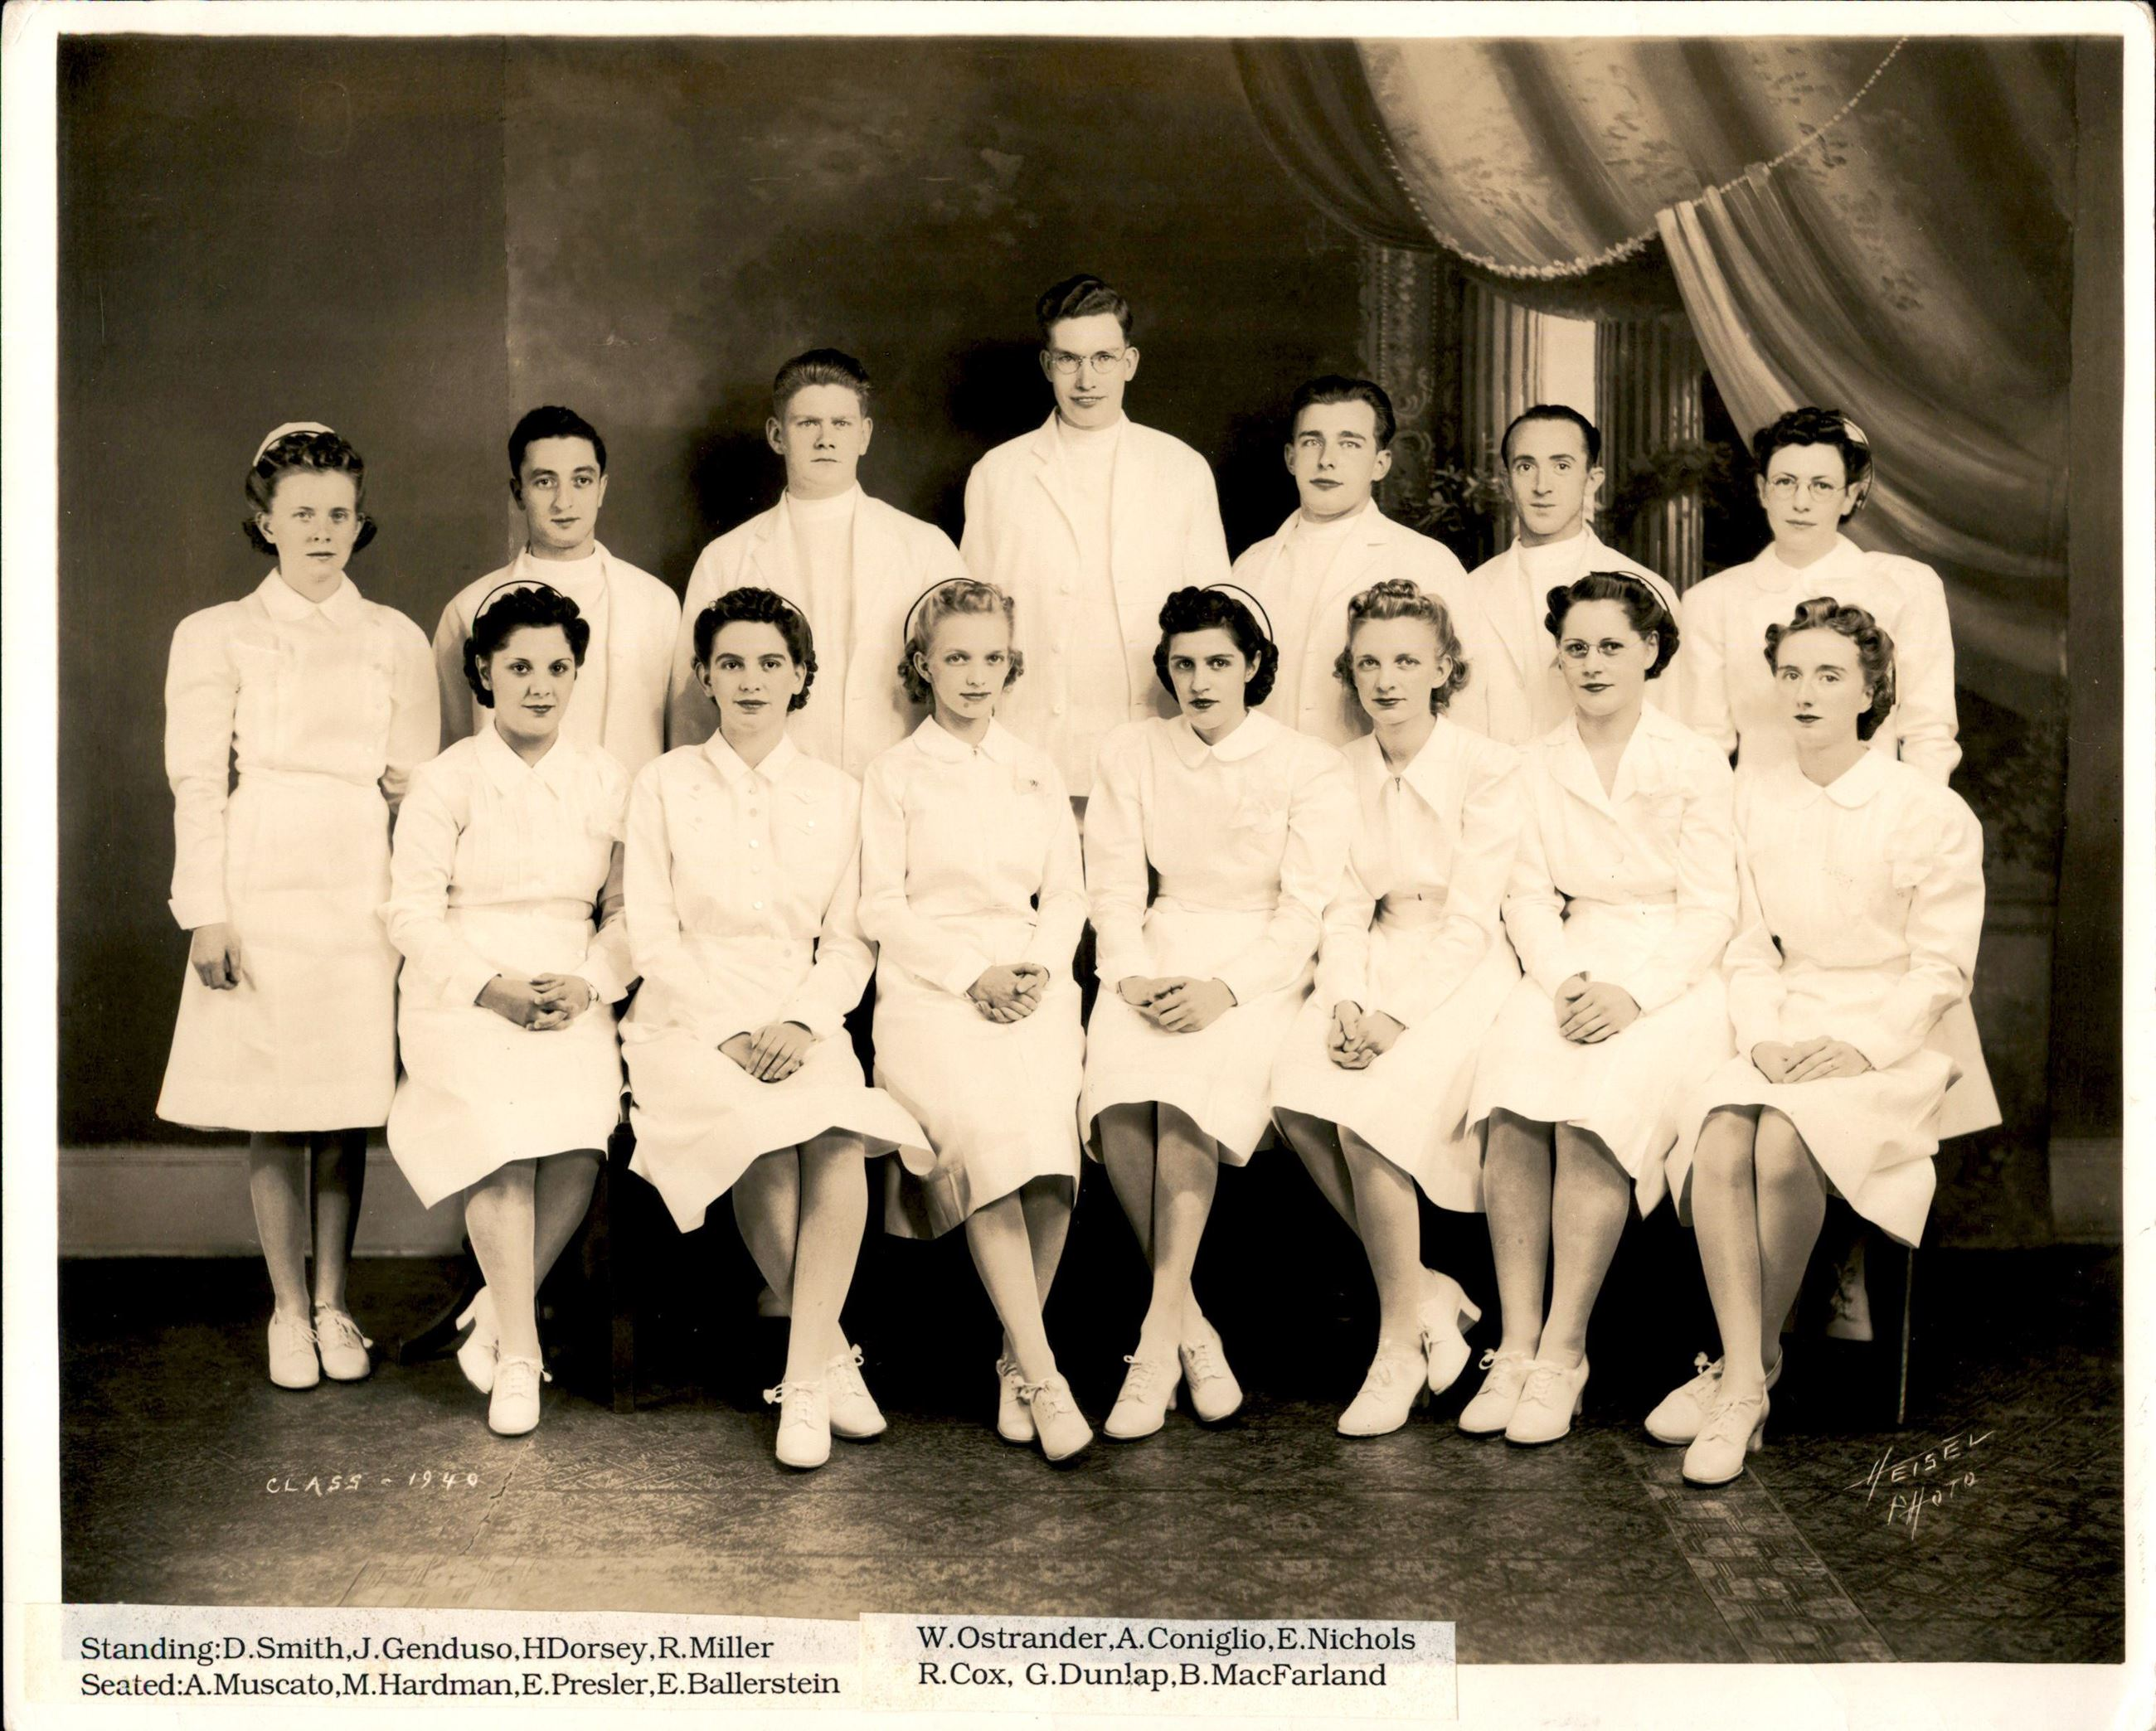 Craig Colony School of Nursing photo